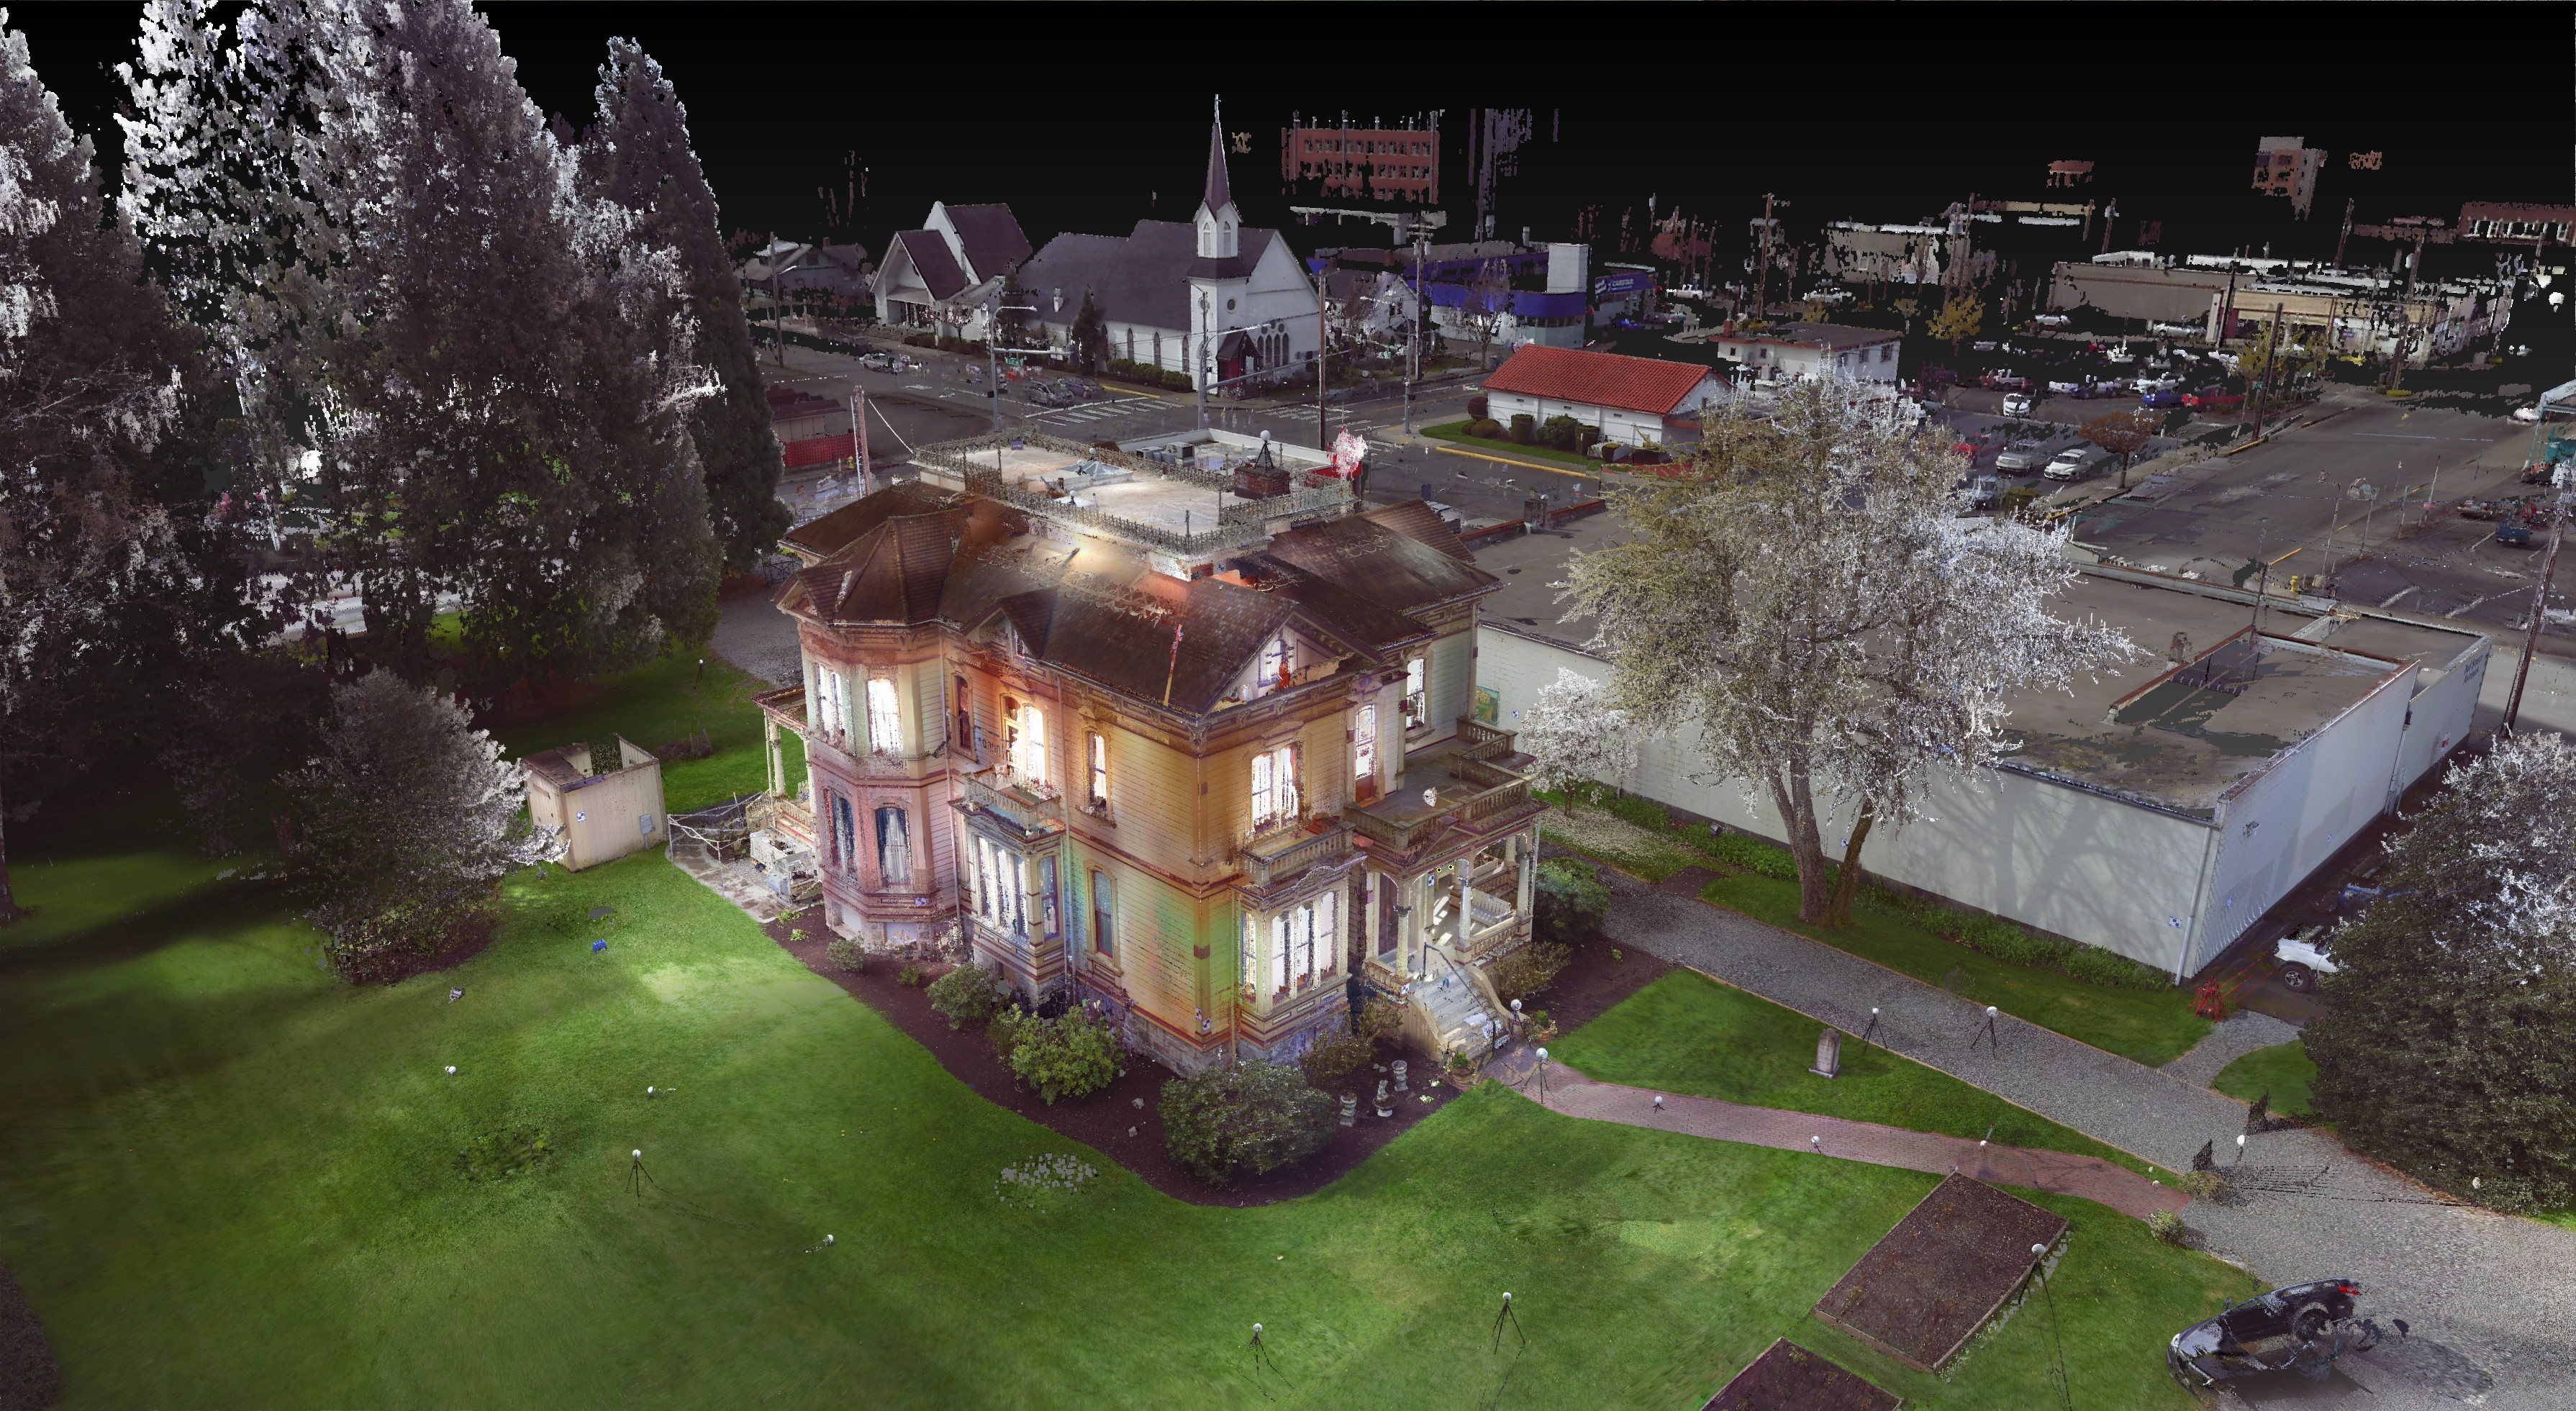 Meeker Mansion 3D Laser Scanning